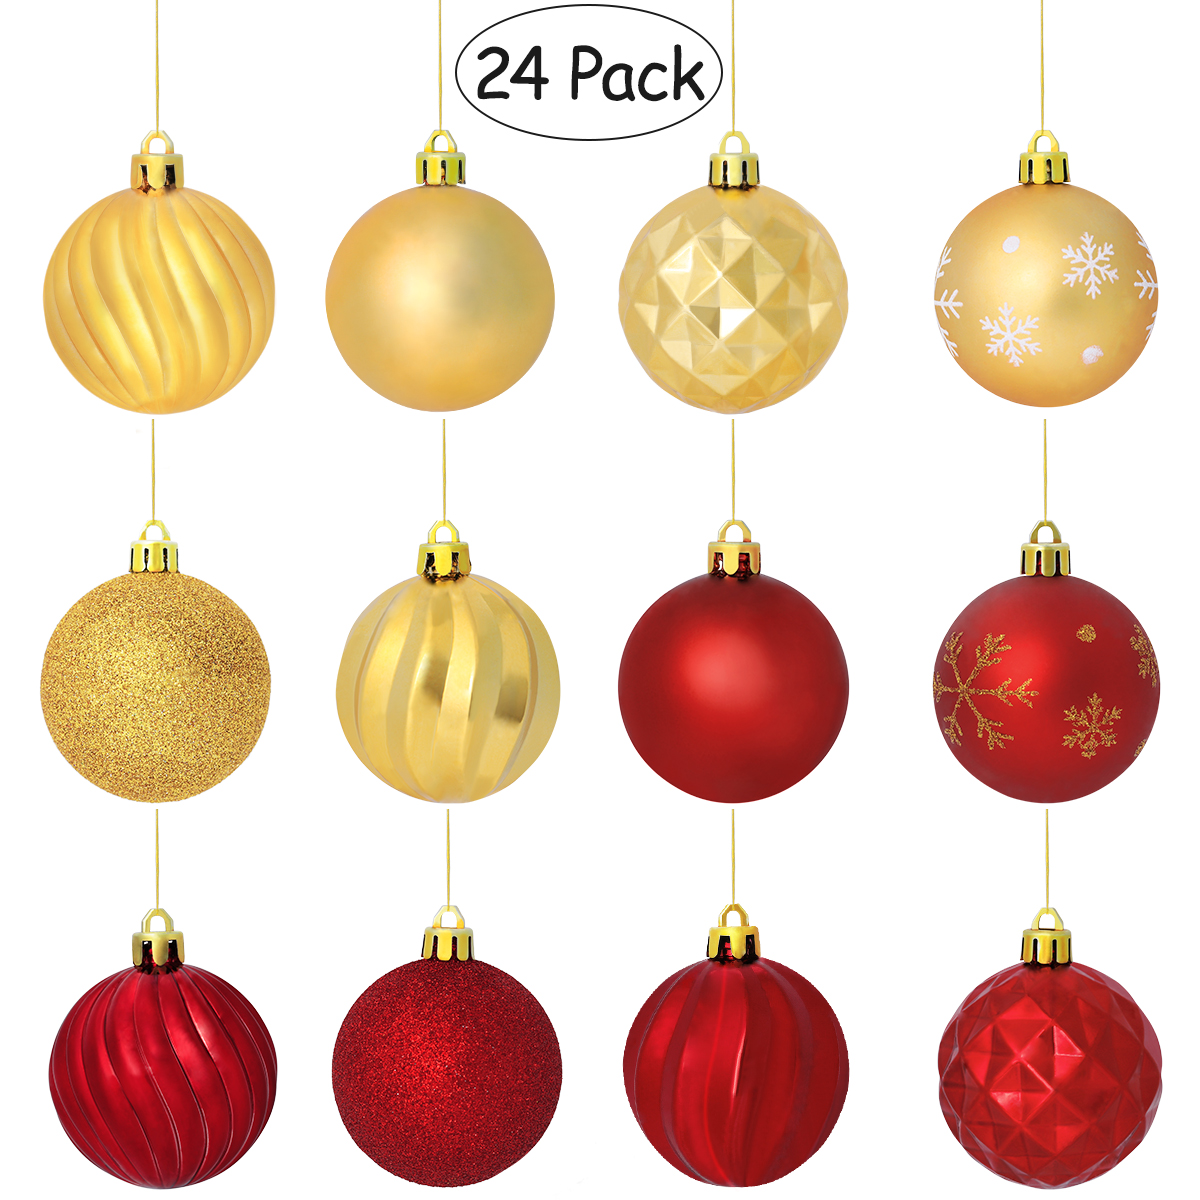 Christmas Ball Ornaments.Us 10 5 38 Off 24pcs Christmas Ball Ornaments With String Shatterproof Hanging Small Balls Tree Ornaments Decoration For Party Holiday Wedding In